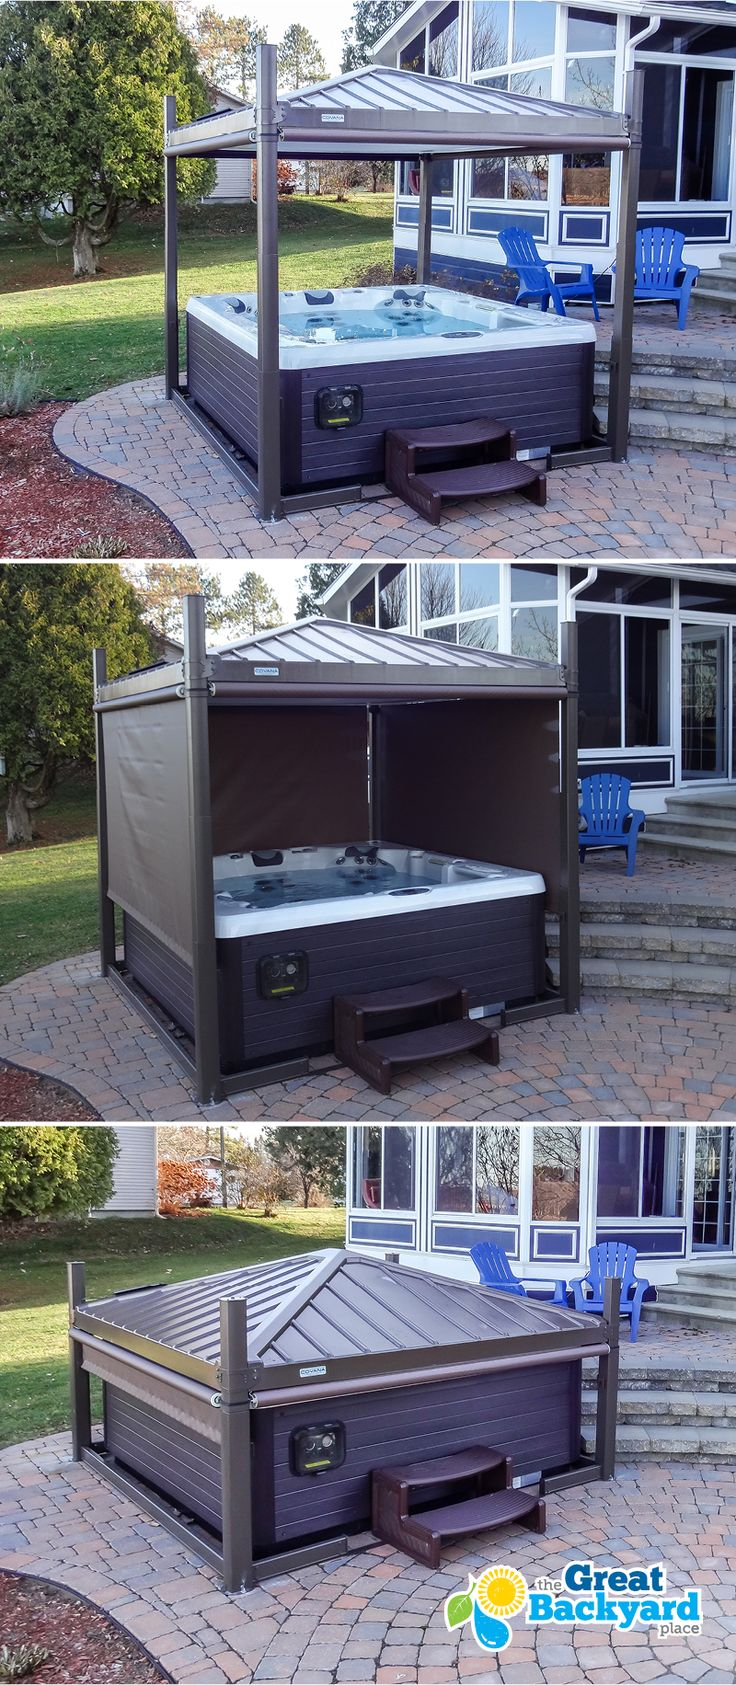 You are not dreaming! The Covana OASIS is not only a hot tub cover, it's also an automated, state-of-the-art, easy-to-use gazebo! #gasawayco.com #bulk water delivery